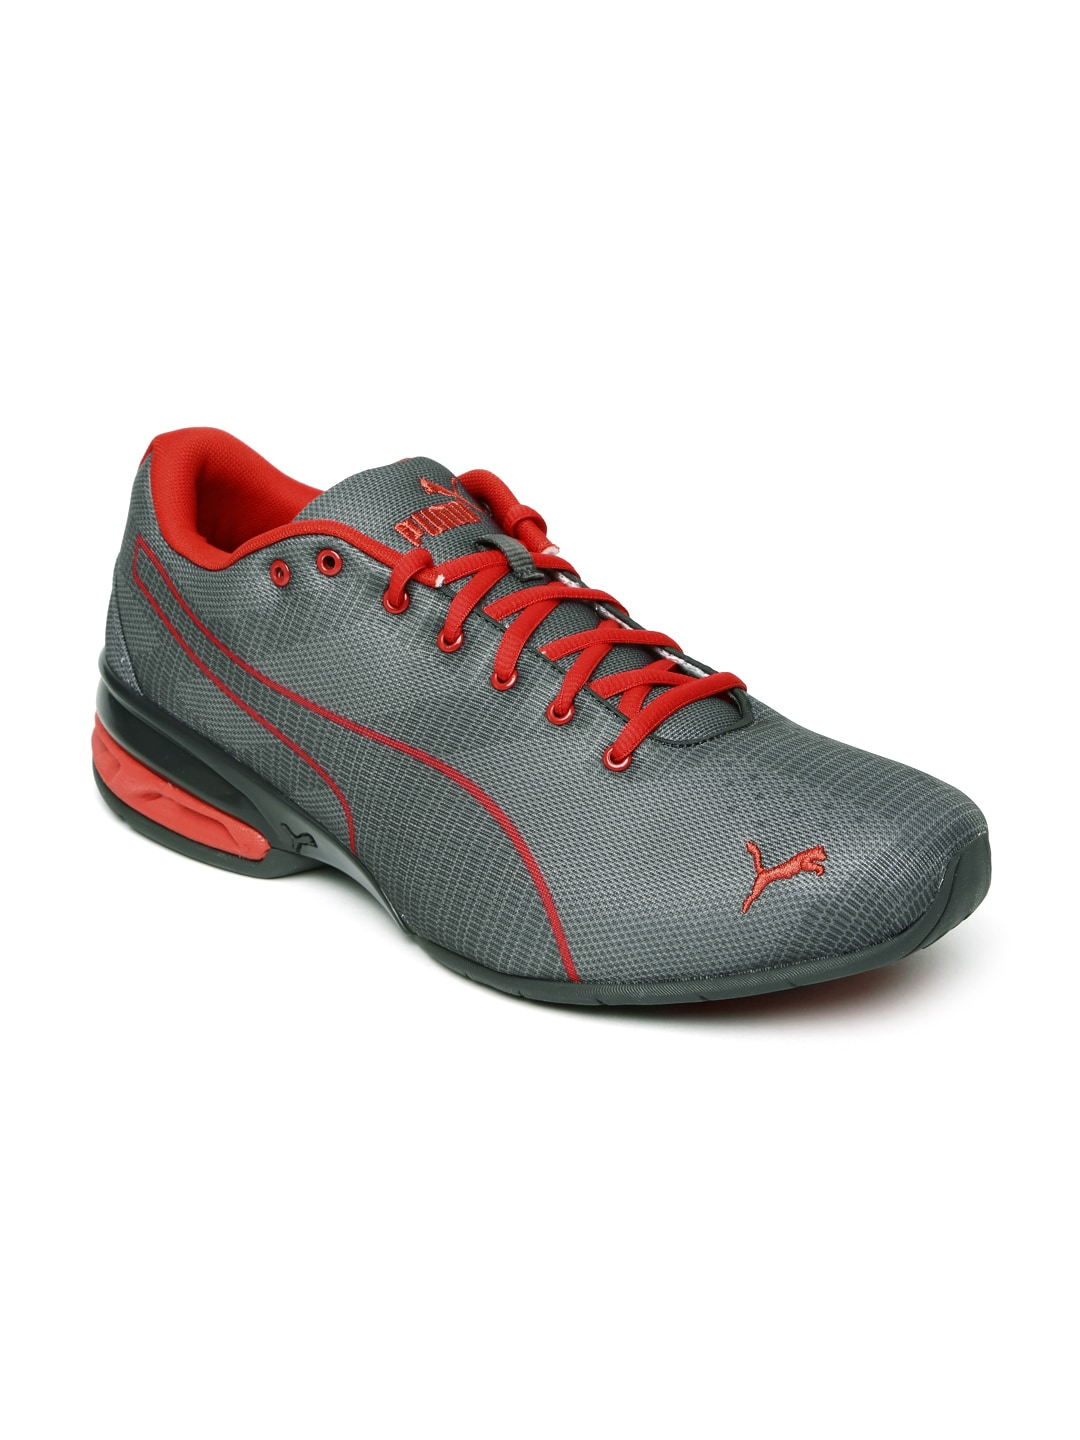 b71be61365be Puma 18949703 Men Grey Tazon 6 Wov Running Shoes - Best Price ...